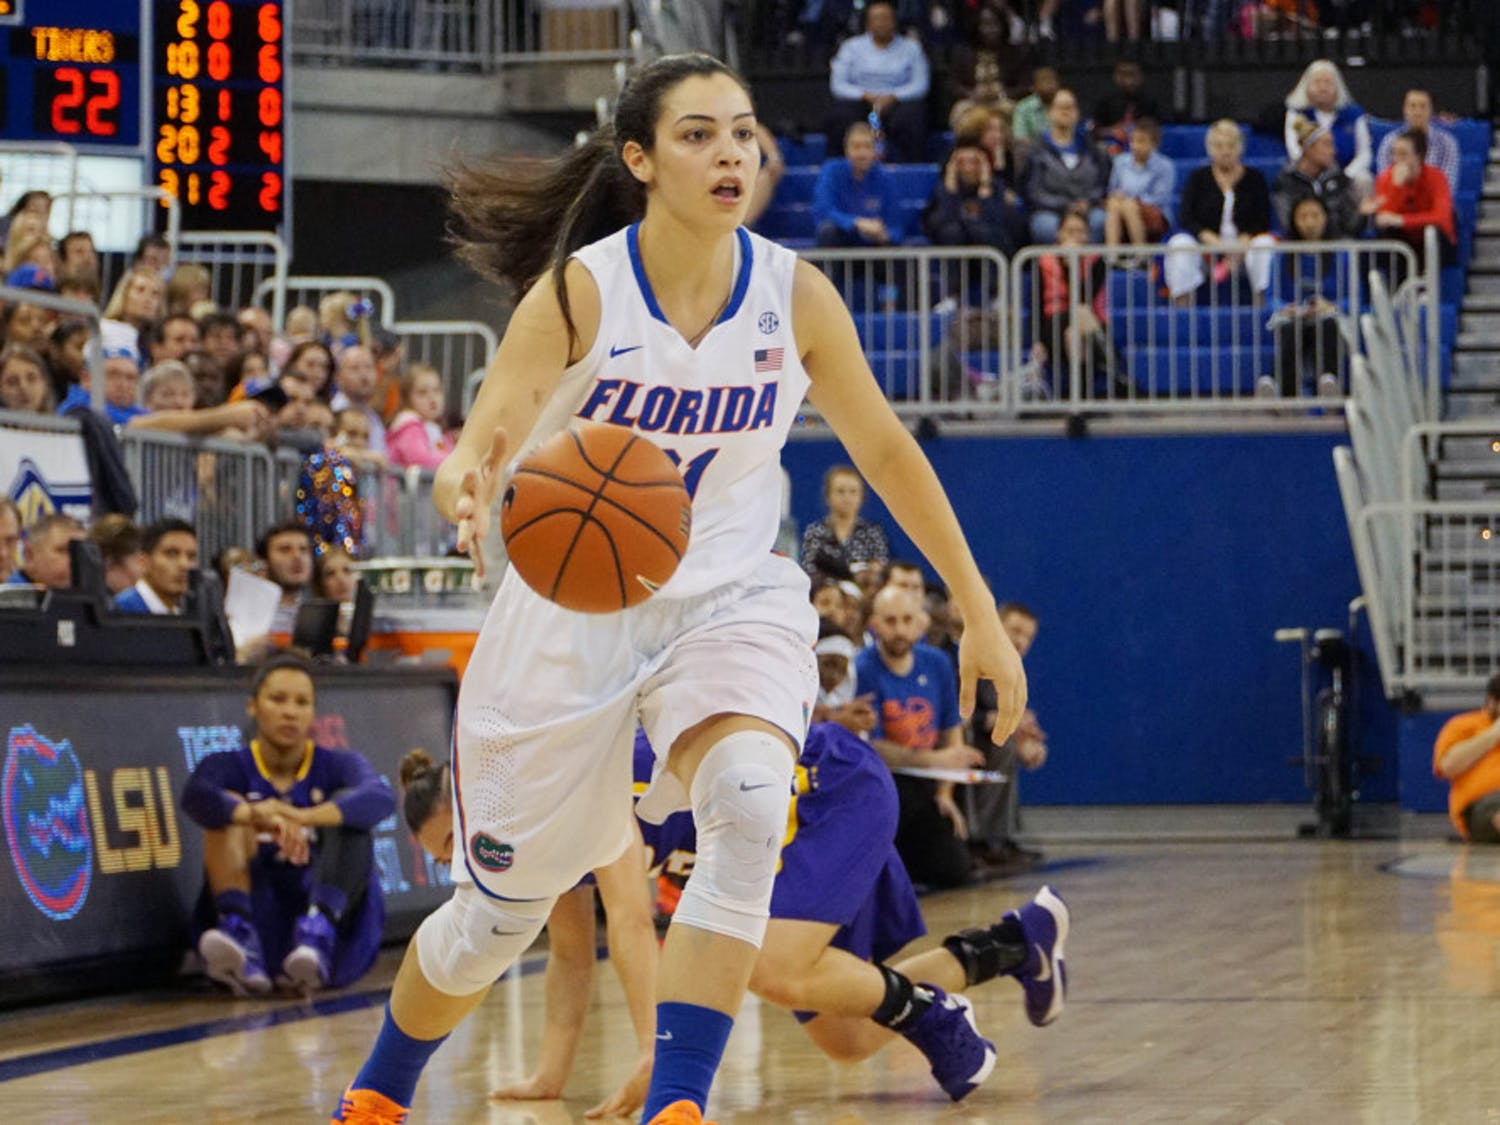 UF guard Eleanna Christinaki drives down the courtduring Florida's 53-45 win against LSU on Jan. 17, 2016, in the O'Connell Center.